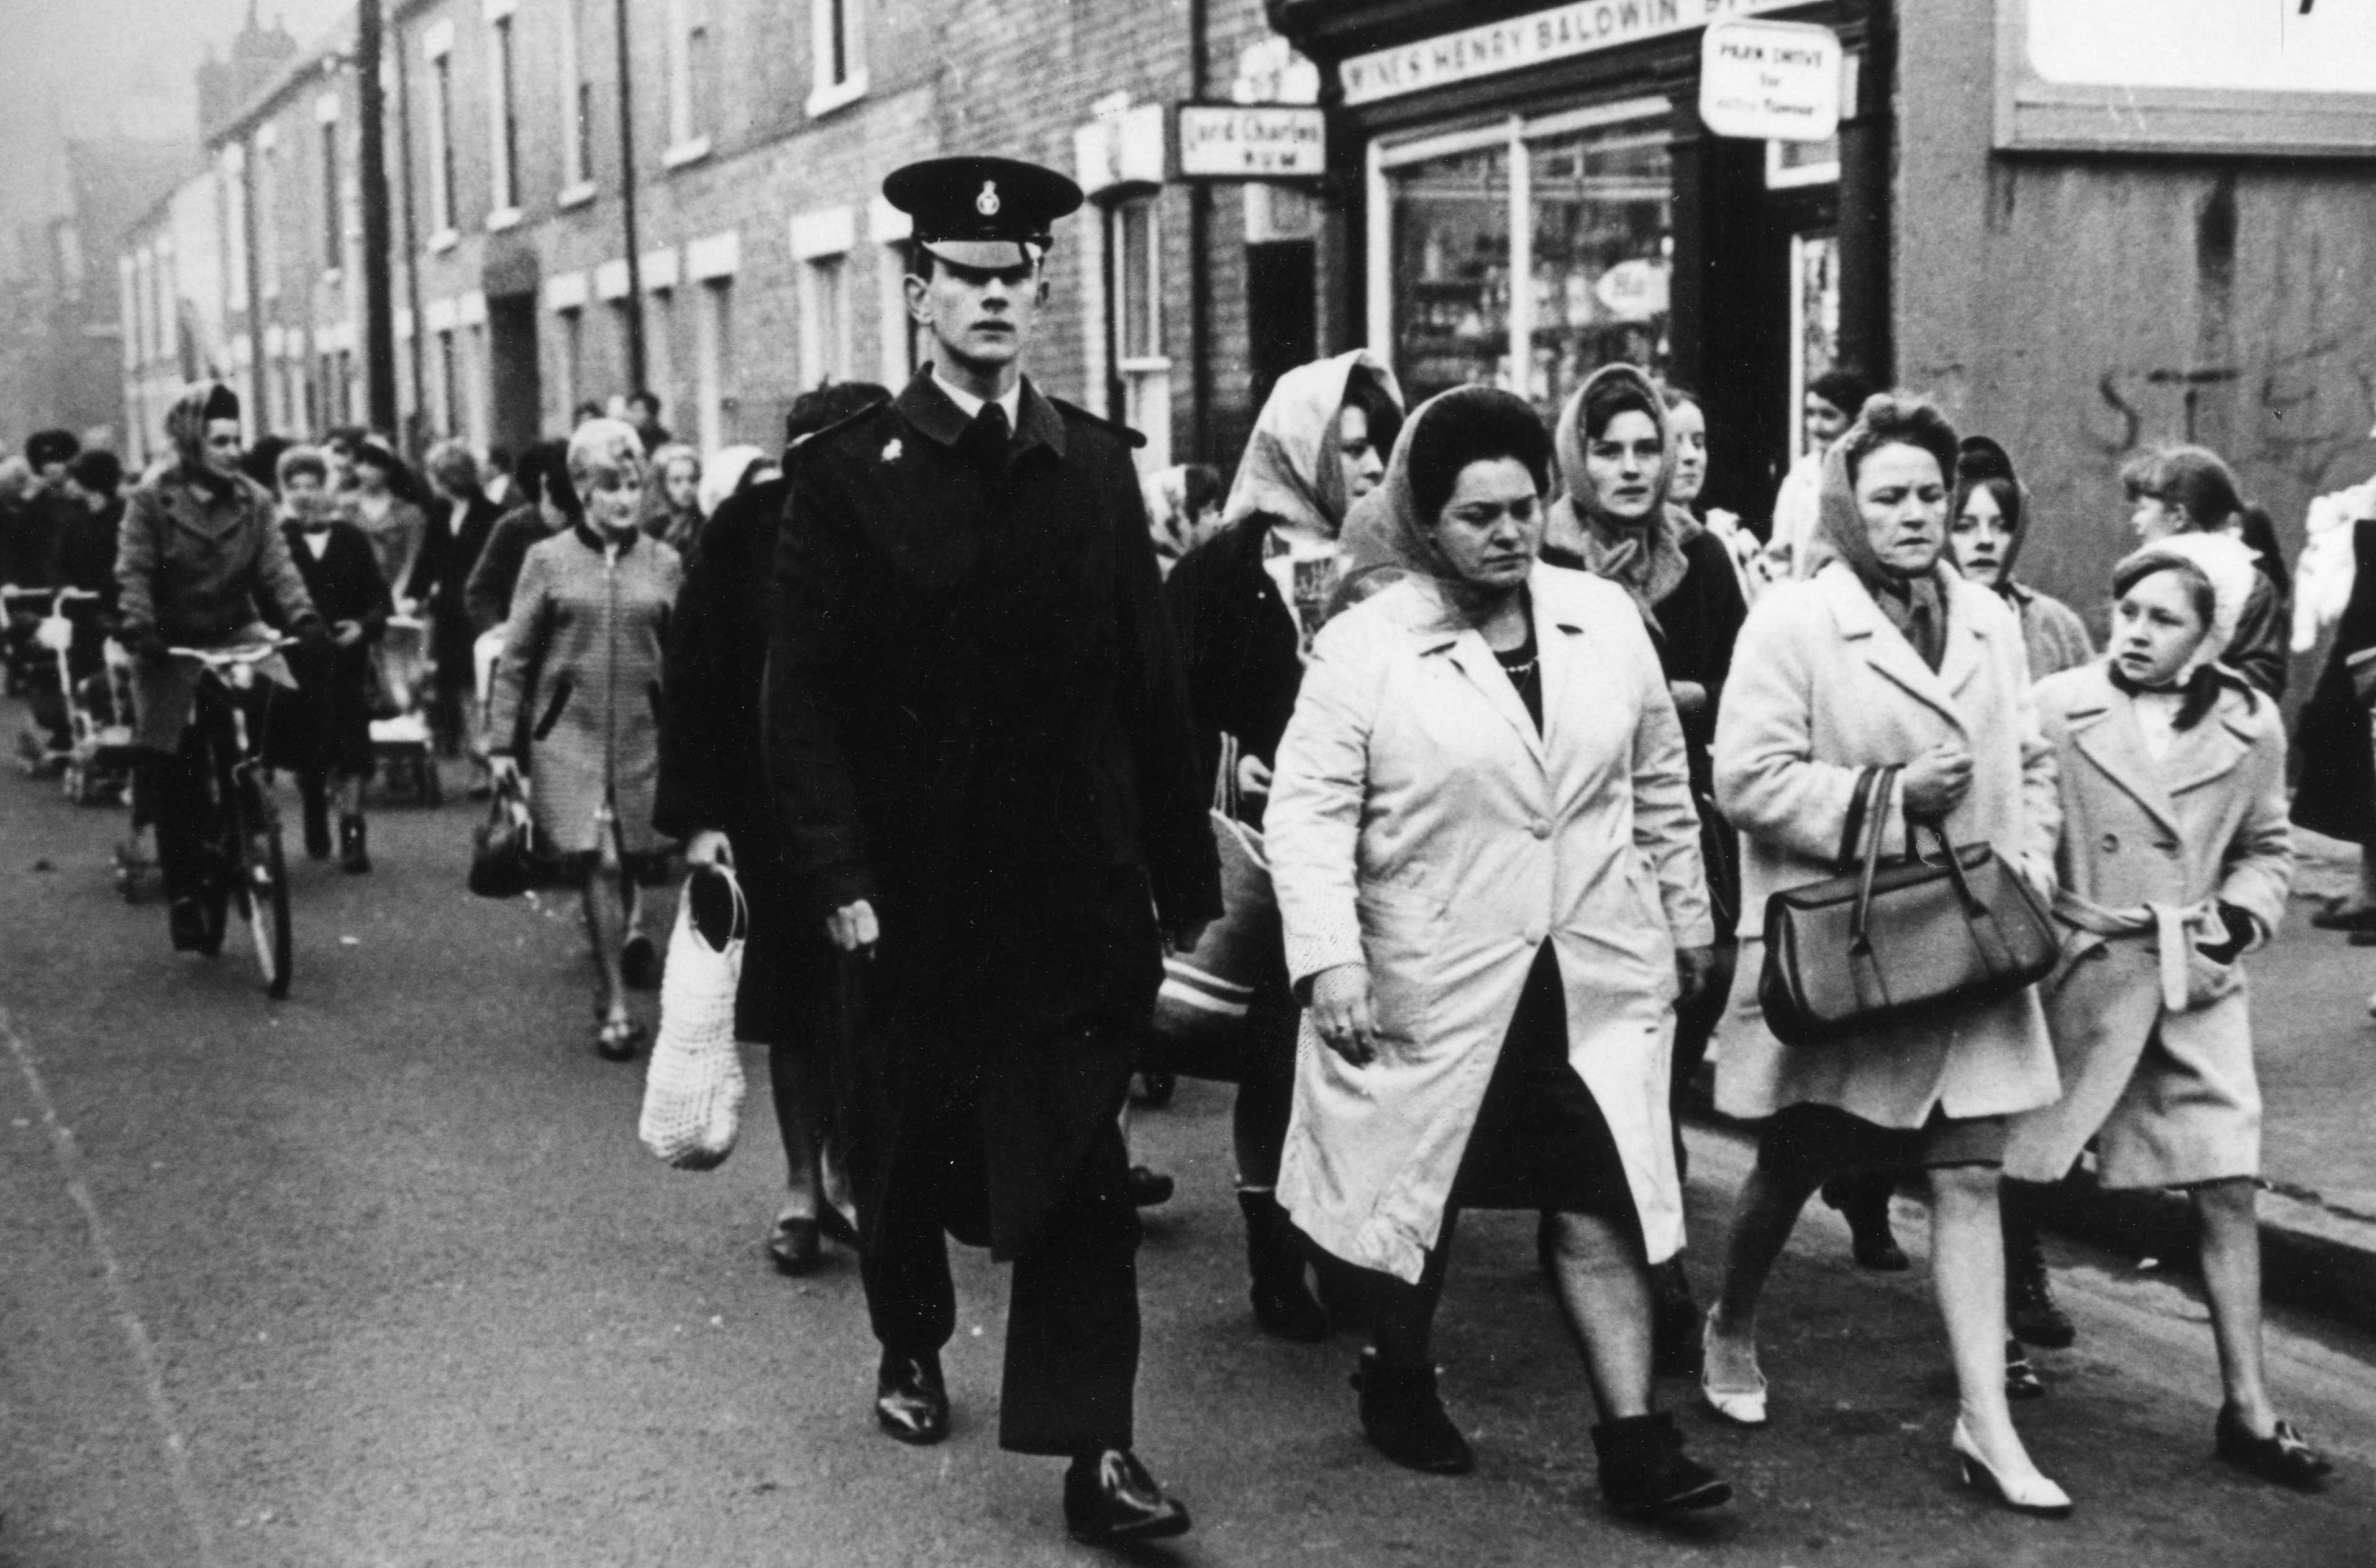 A black and white photo taken in 1968. A group of women walk purposefully along a street in Hull. They are all wearing coats and head scarves. At the front is Lillian Bilocca, the person leading the protest. Next to her is a policeman.